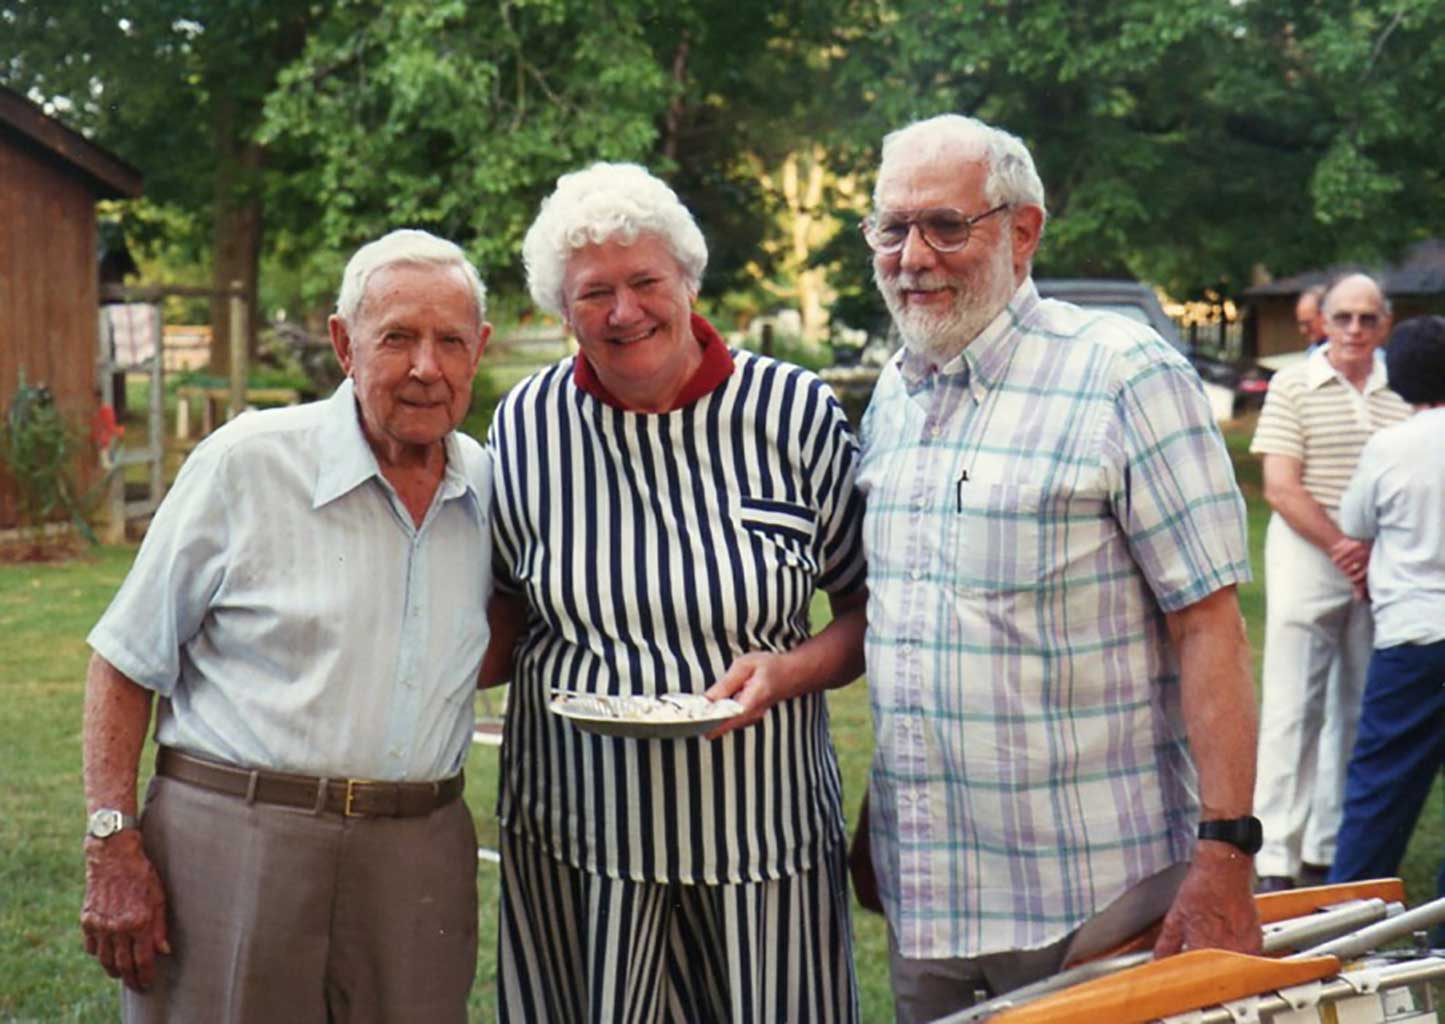 willie-staylor-mary-lou-thomas-dr-thomas-at-4th-of-july-picnic-1994-img284